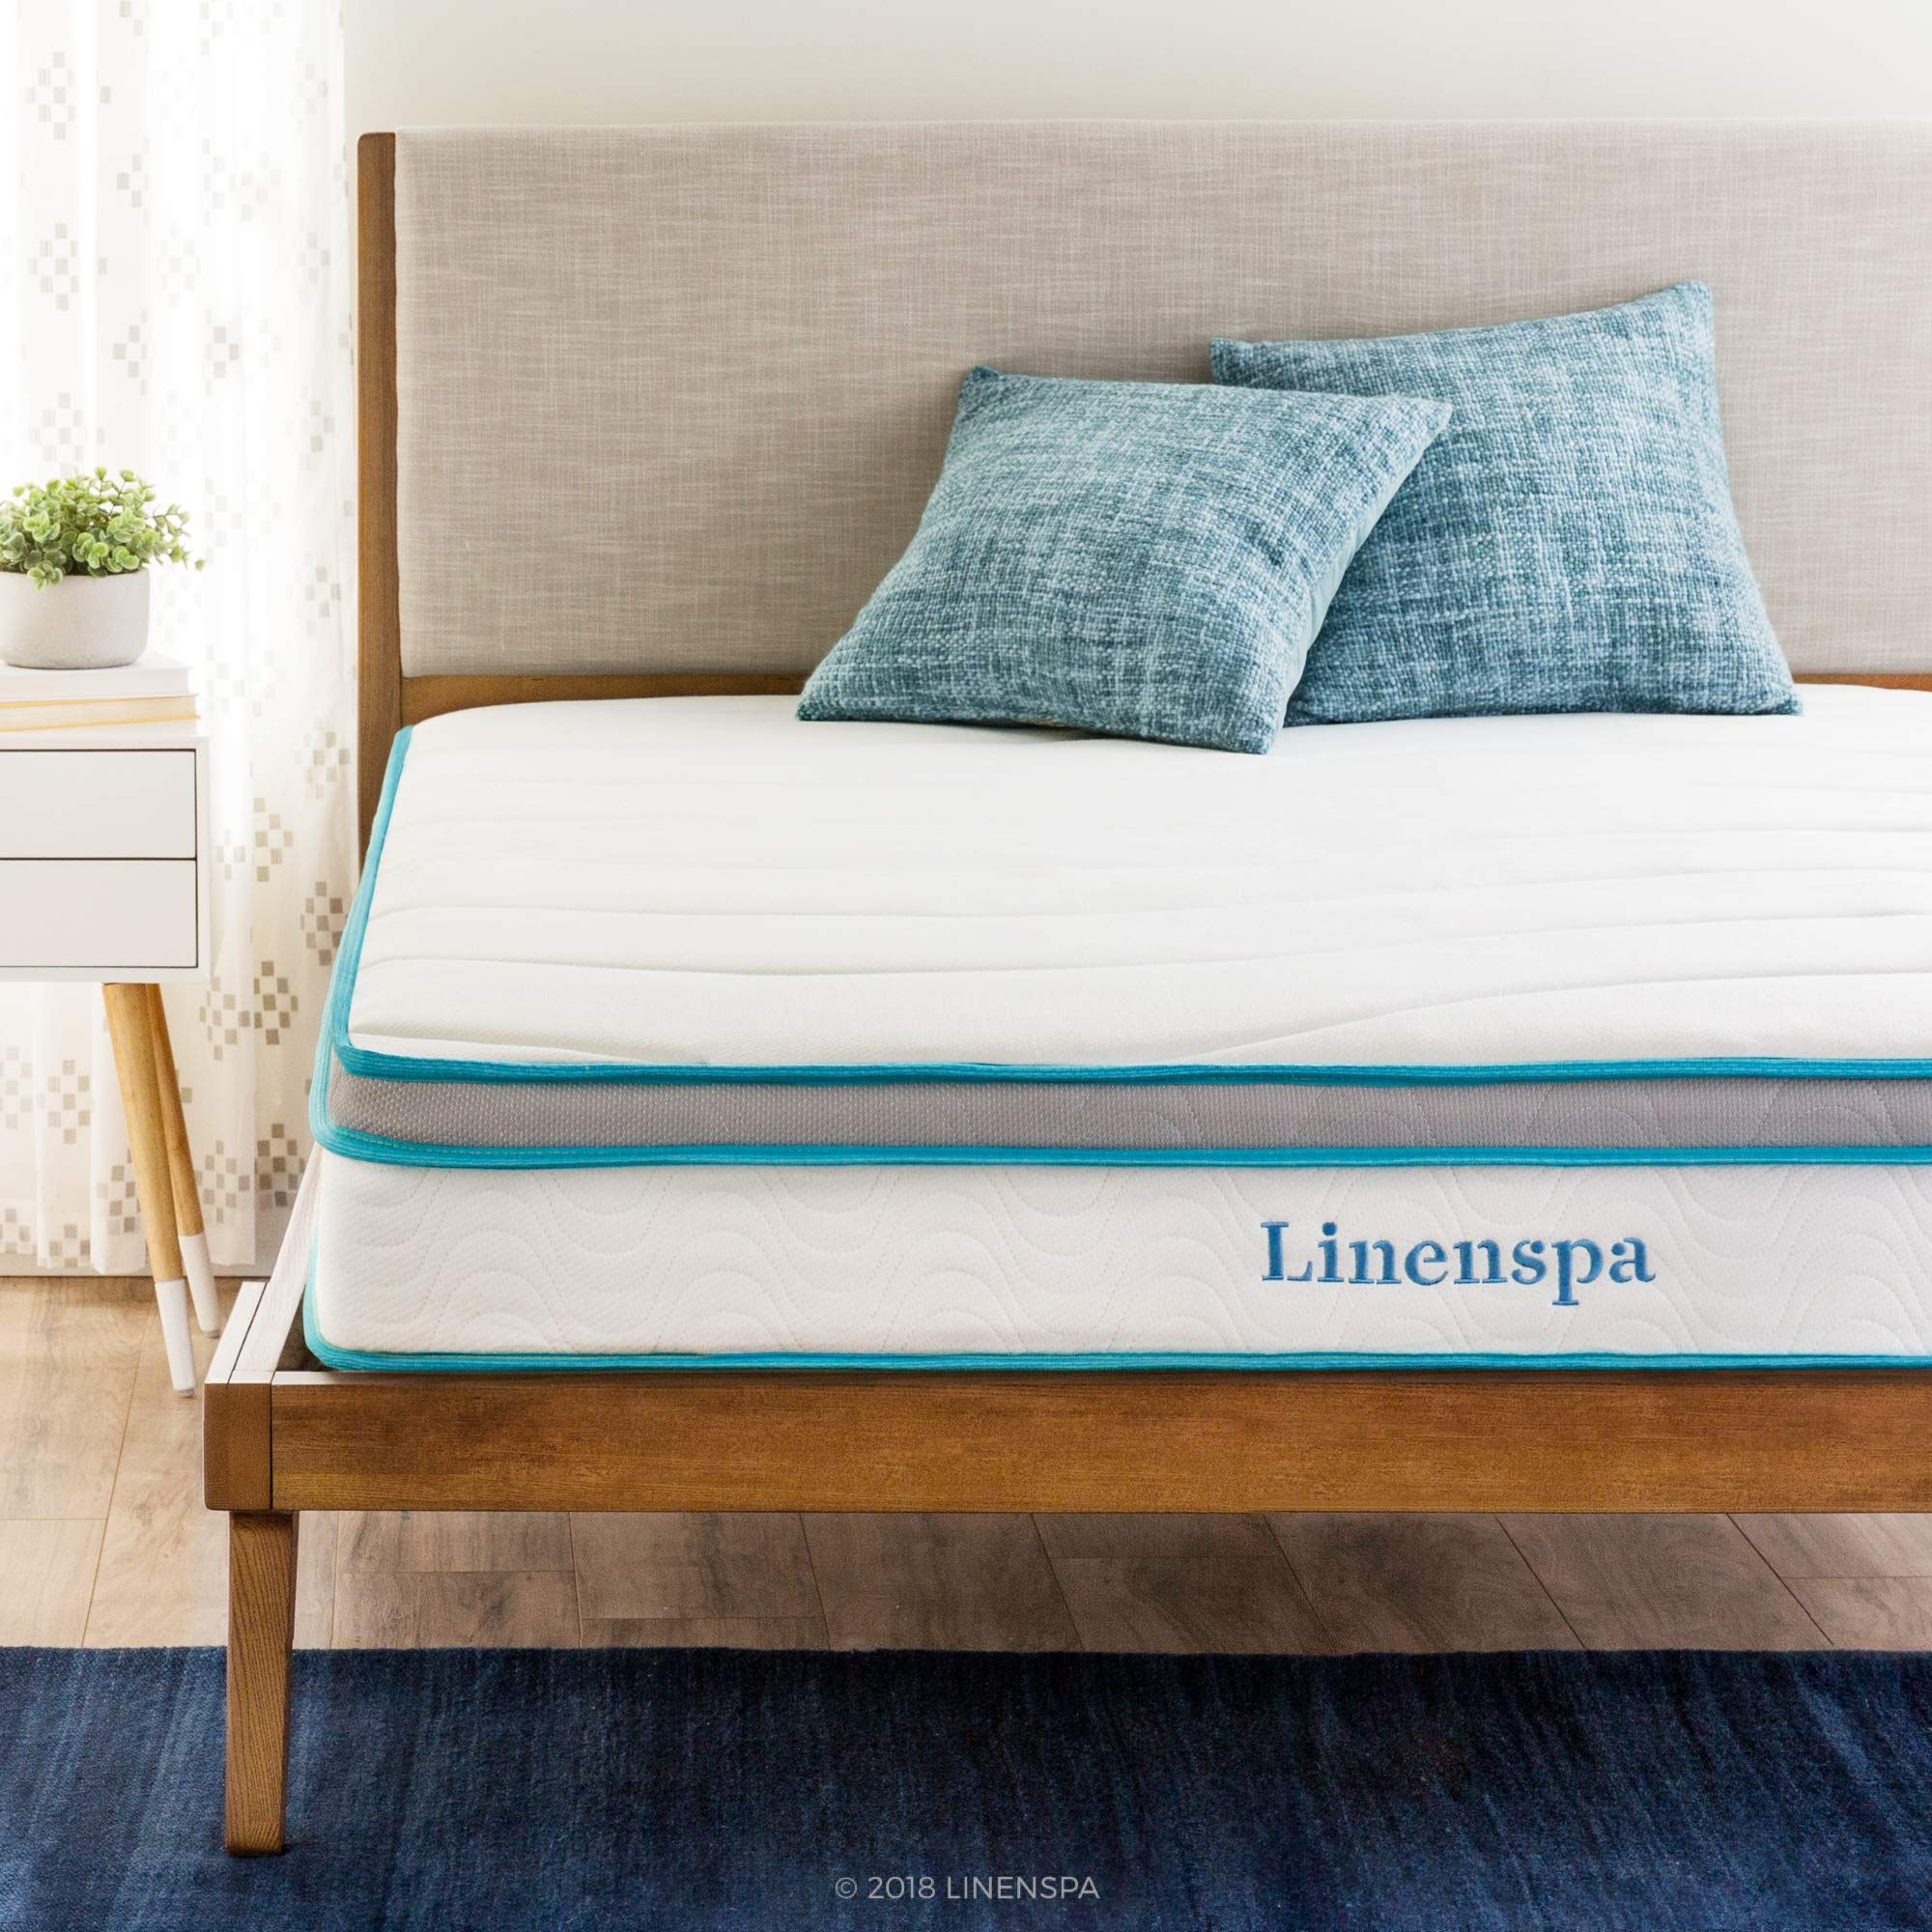 Linenspa 8 Inch Memory Foam And Innerspring Hybrid Mattress Twin Hybrid Mattress Queen Mattress Size Best Mattress